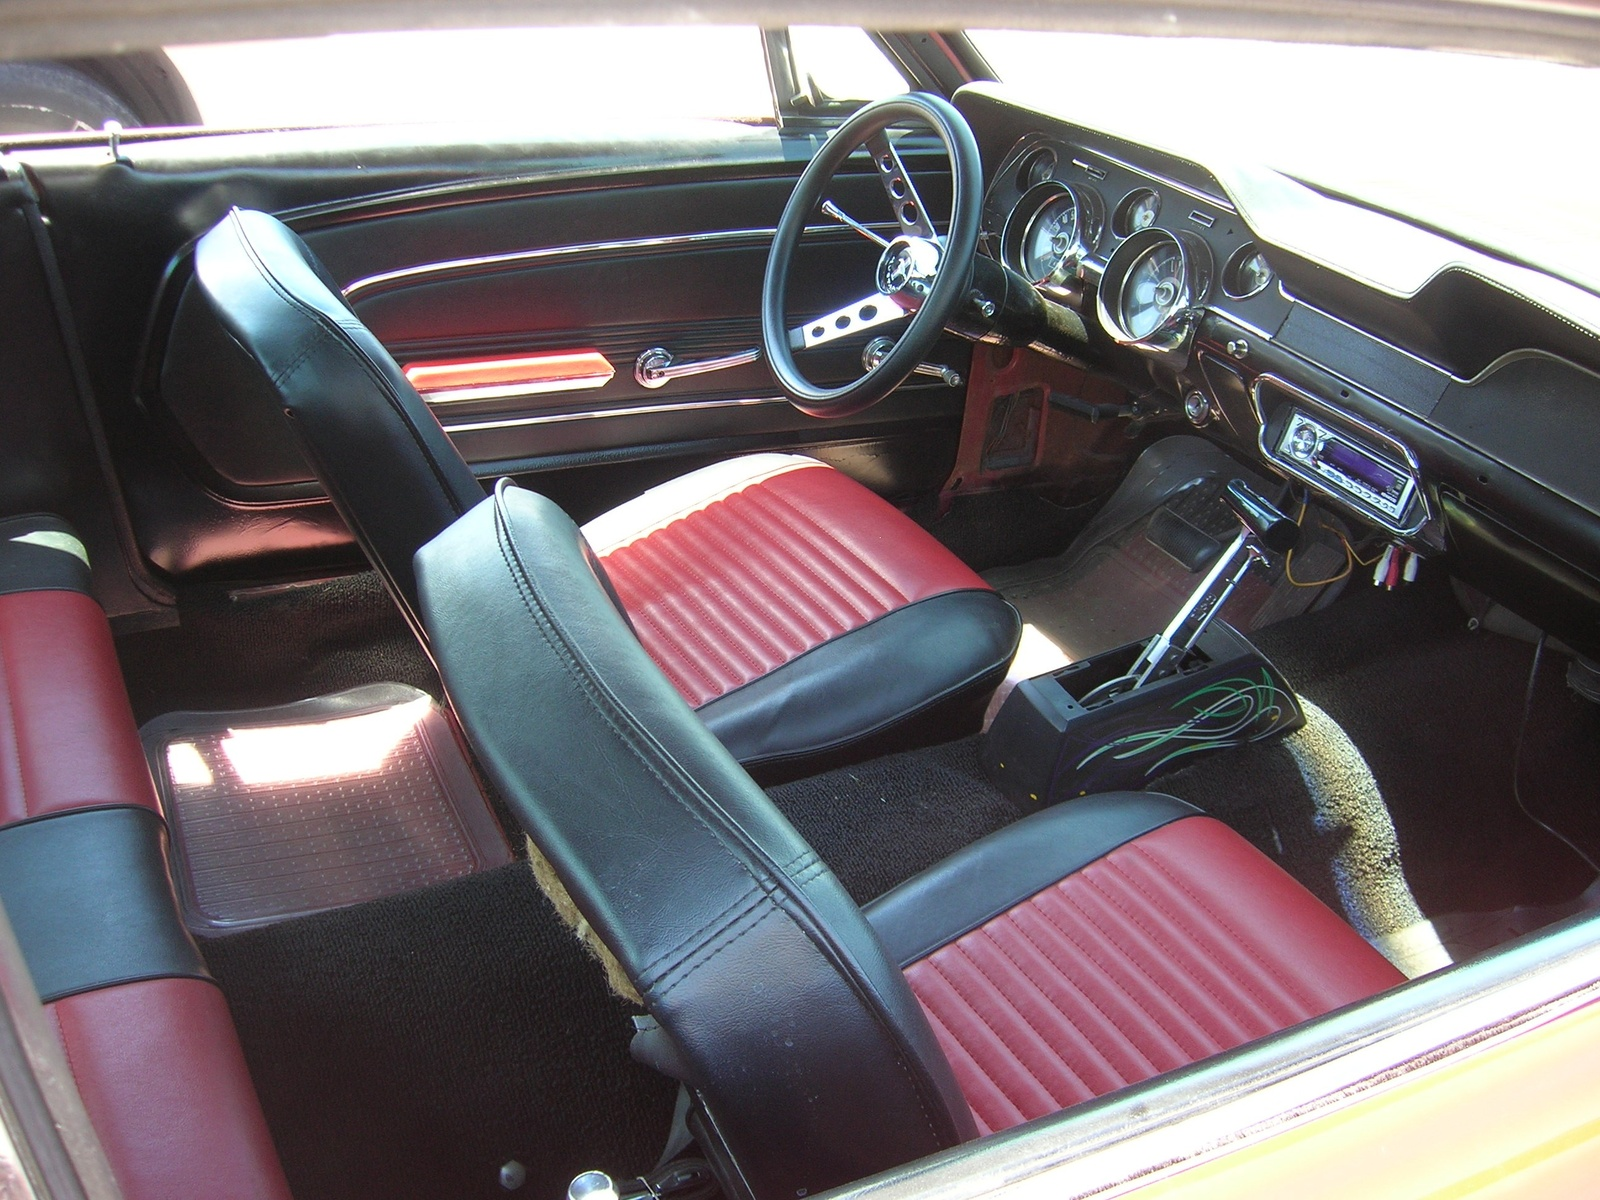 1967 mustang blue interior paint color - 1967 Ford Mustang Interior